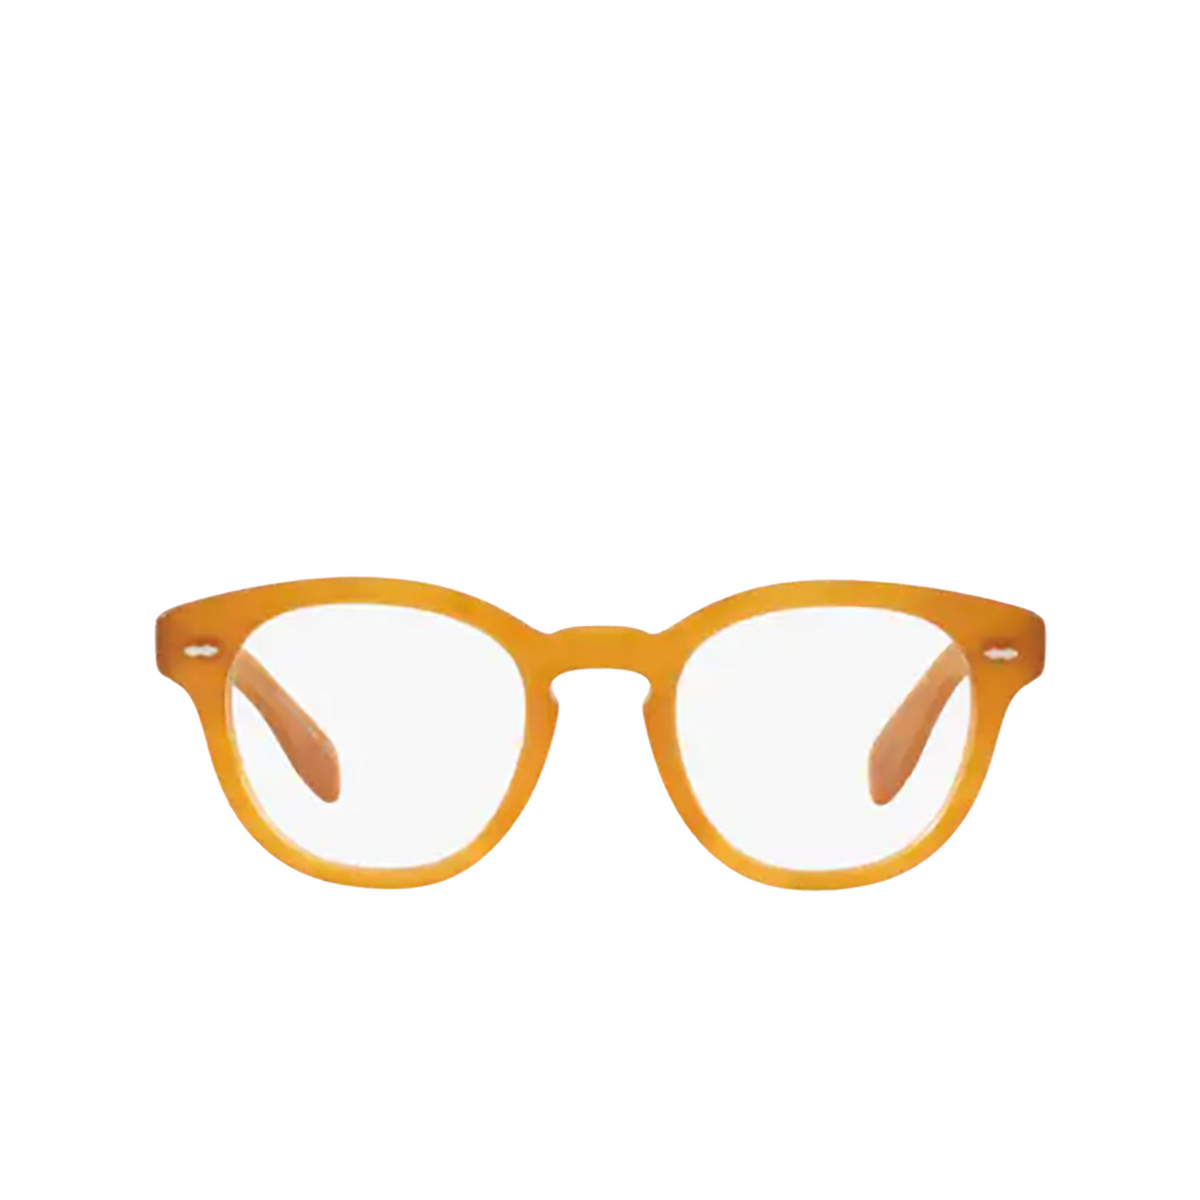 Oliver Peoples® Round Eyeglasses: Cary Grant OV5413U color Semi Matte Amber Tortoise 1699 - front view.